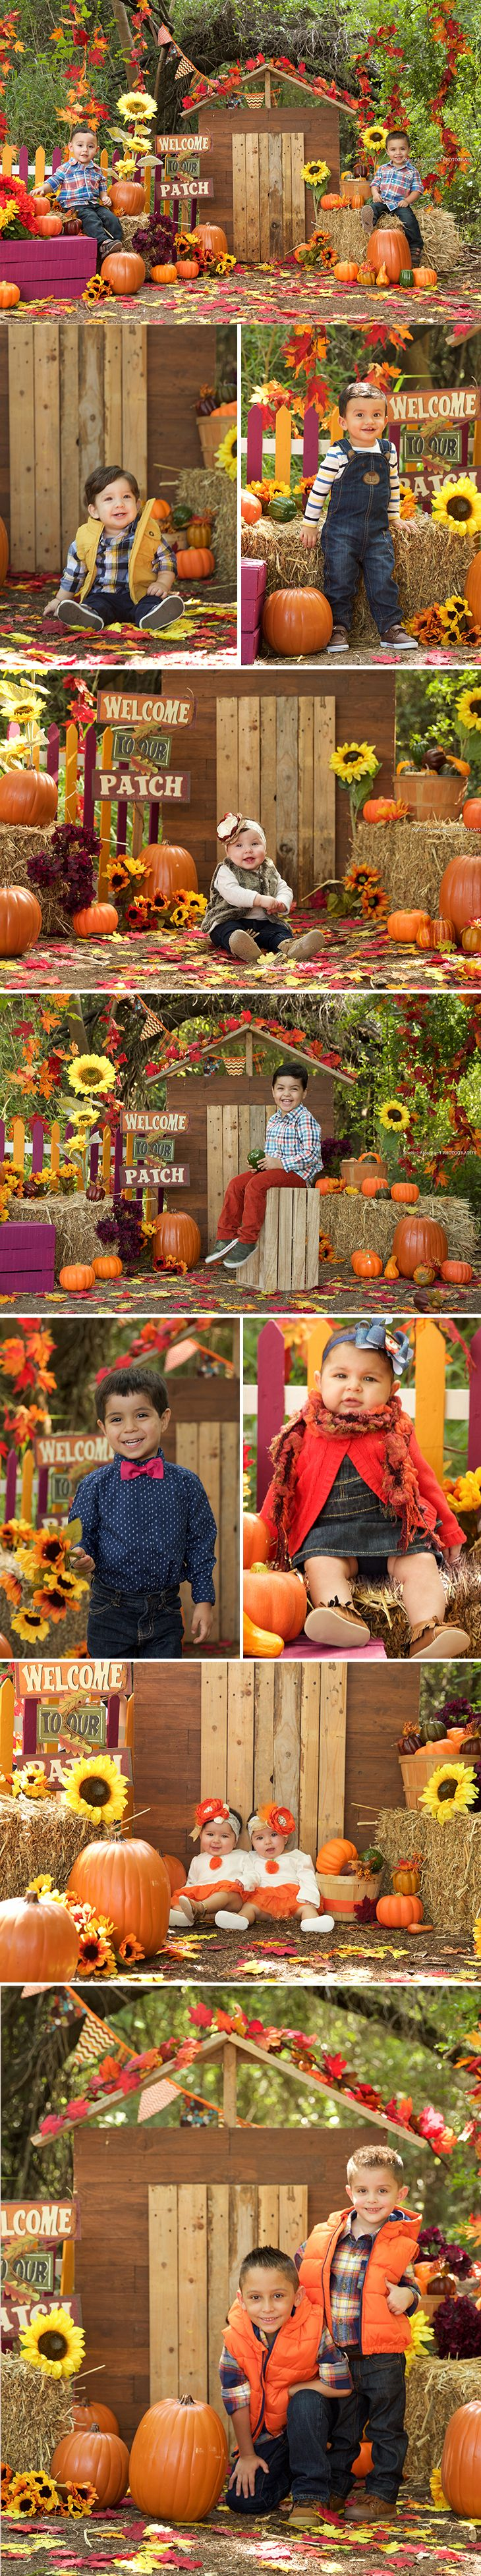 Fall Mini Session, Fall, Mini Session, Ideas, Fall Mini Session Set, Pumpkins,